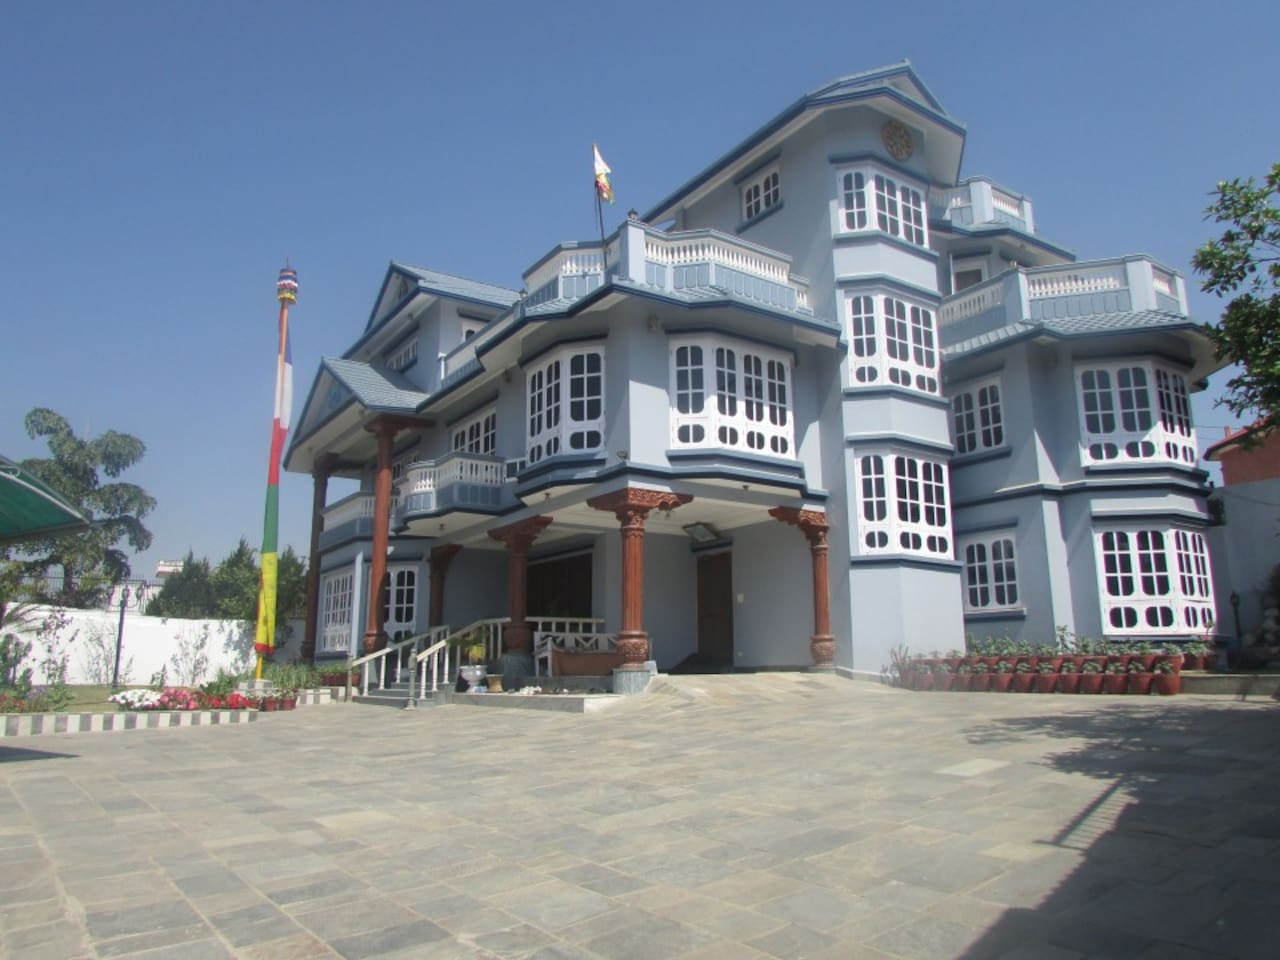 Himalayan Sherpa Residence, where we stay and provided some space for rental within family environment.